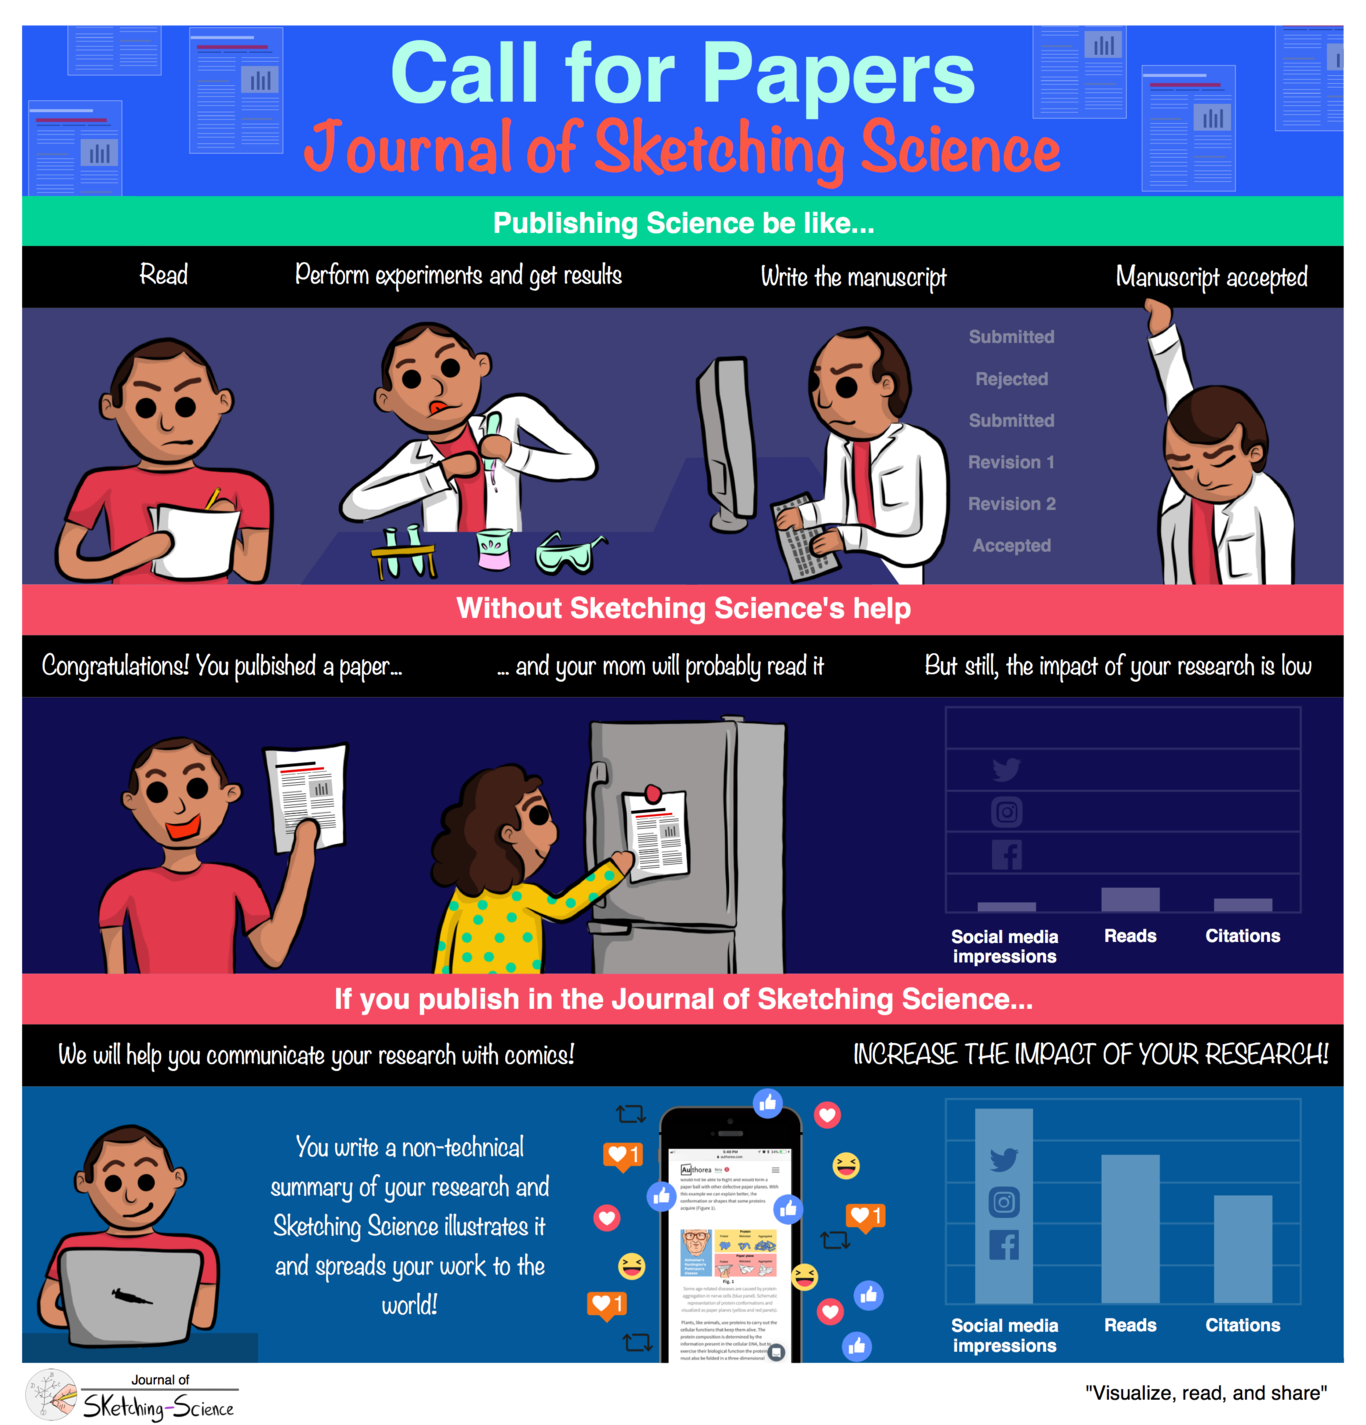 Call for papers researcher ad